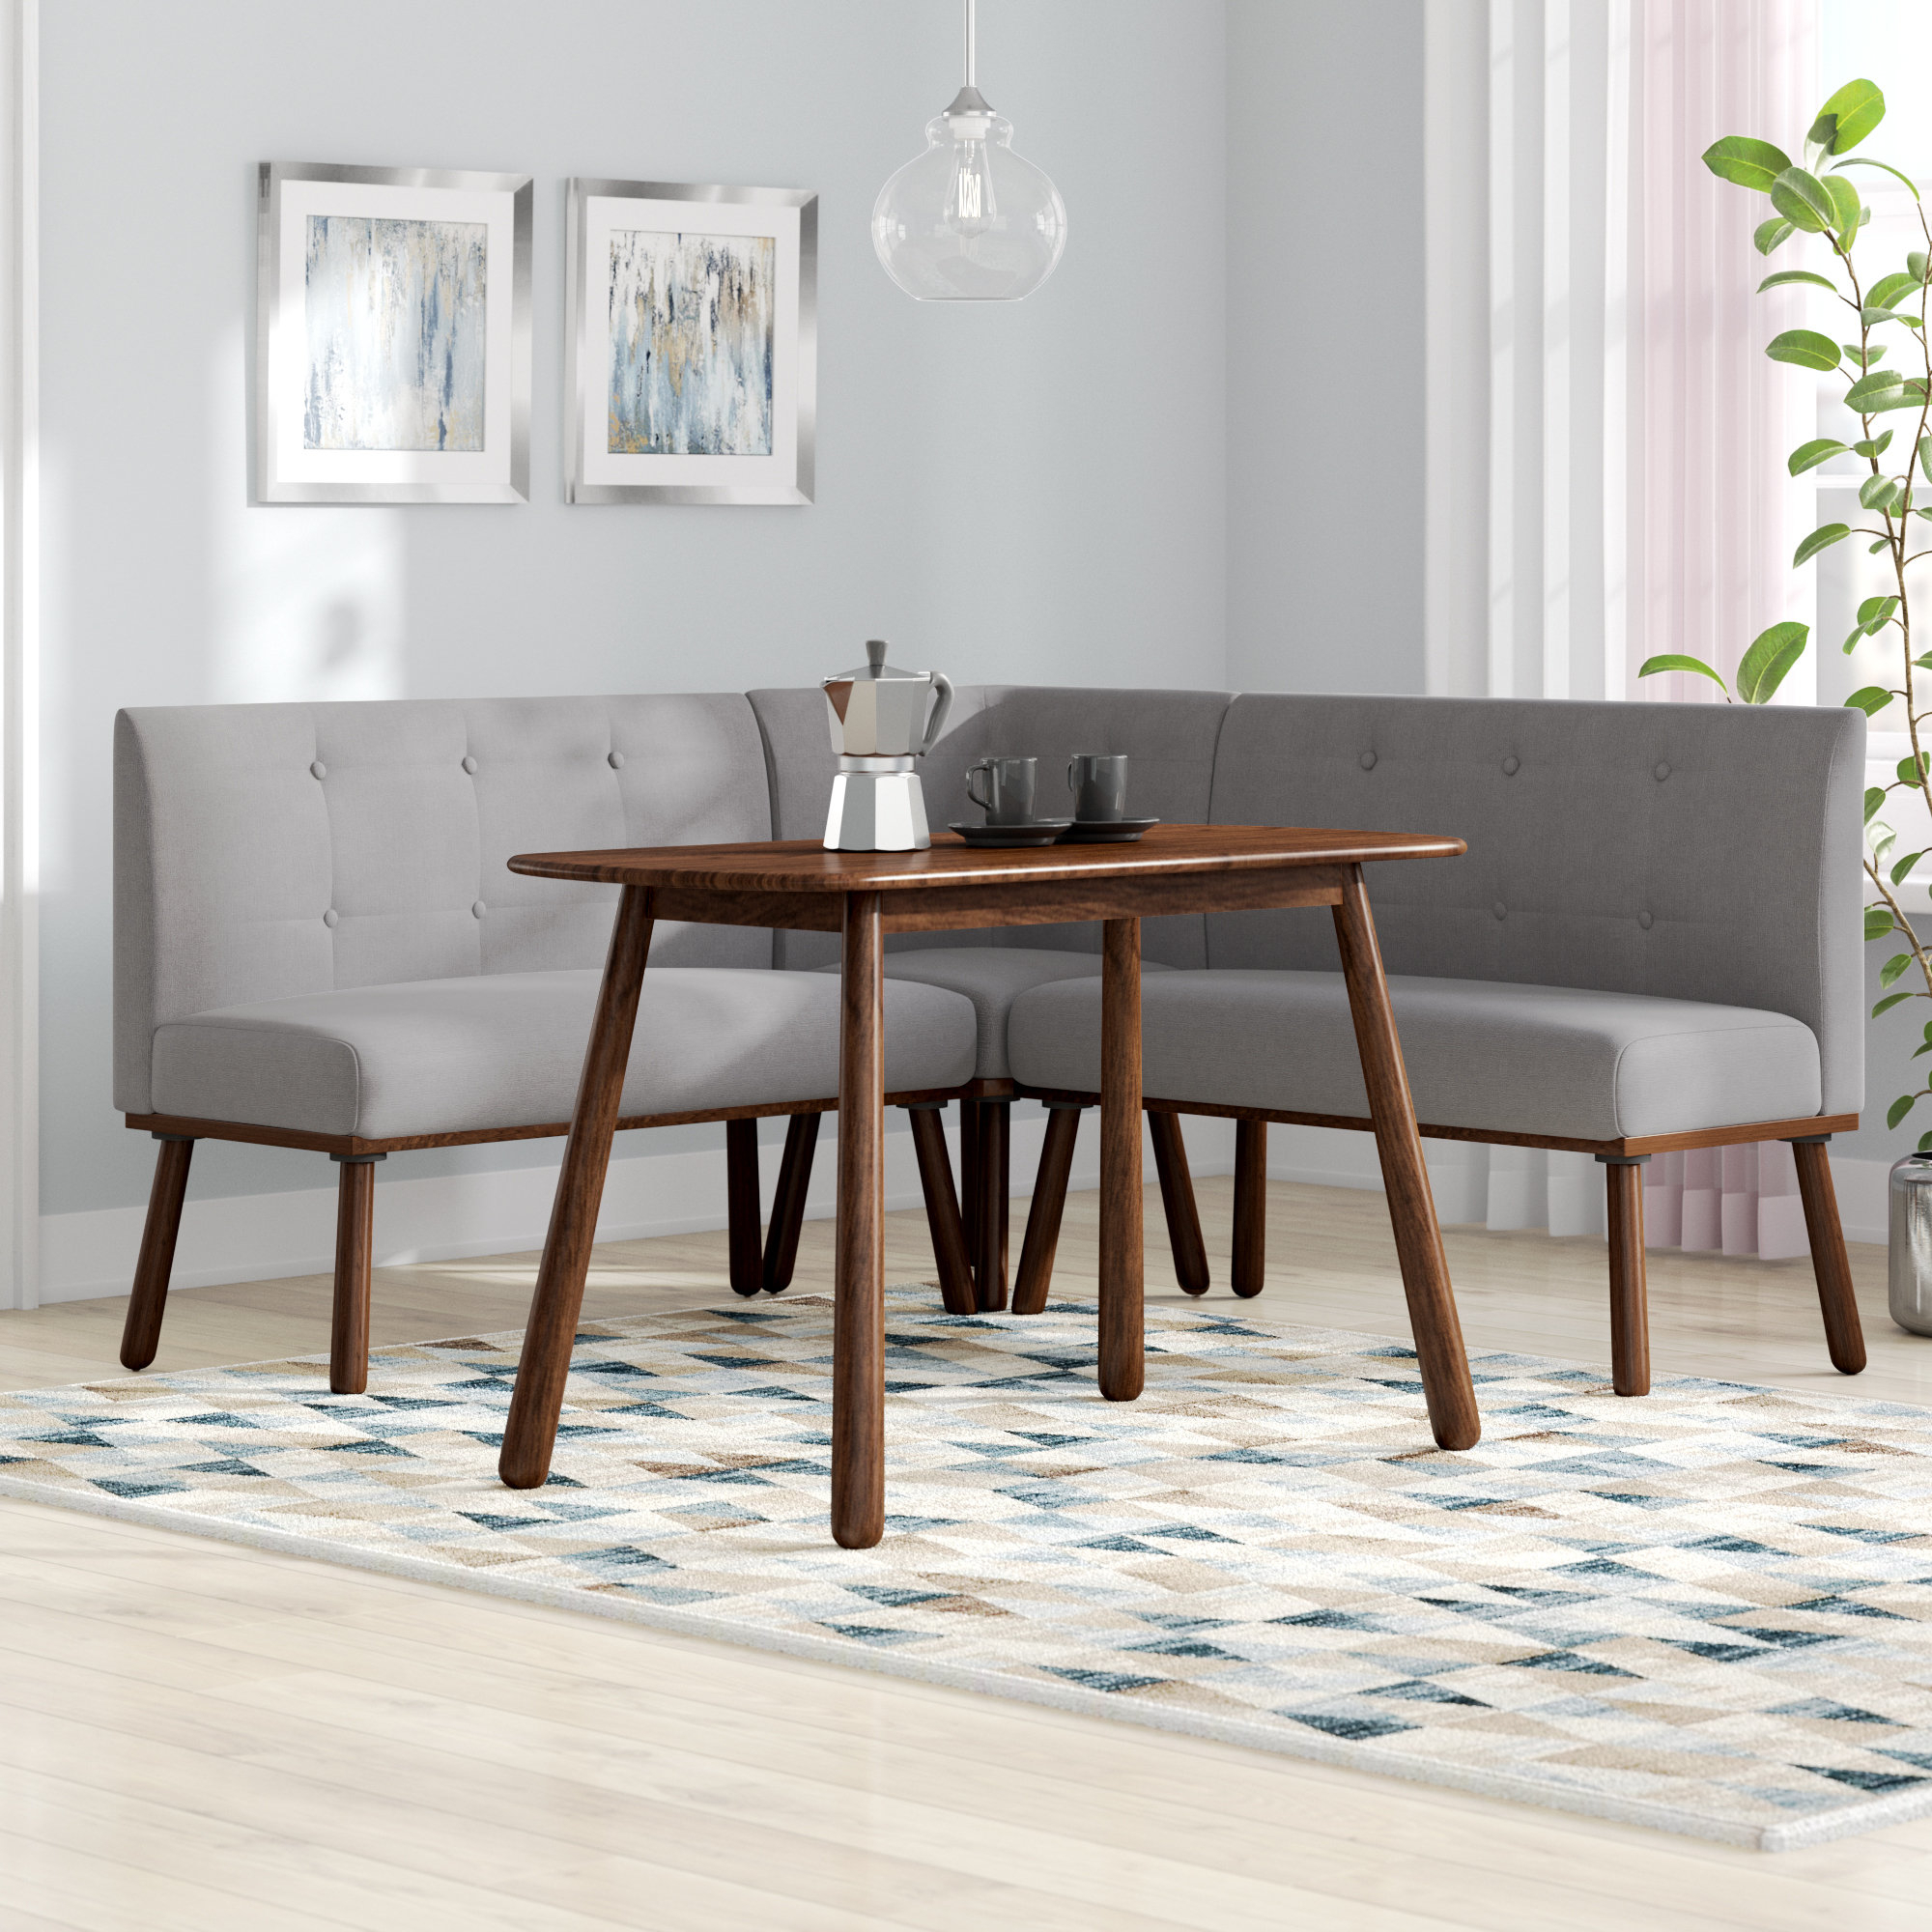 Bucci 4 Piece Breakfast Nook Rectangular Dining Set With Regard To Fashionable Liles 5 Piece Breakfast Nook Dining Sets (Gallery 7 of 20)